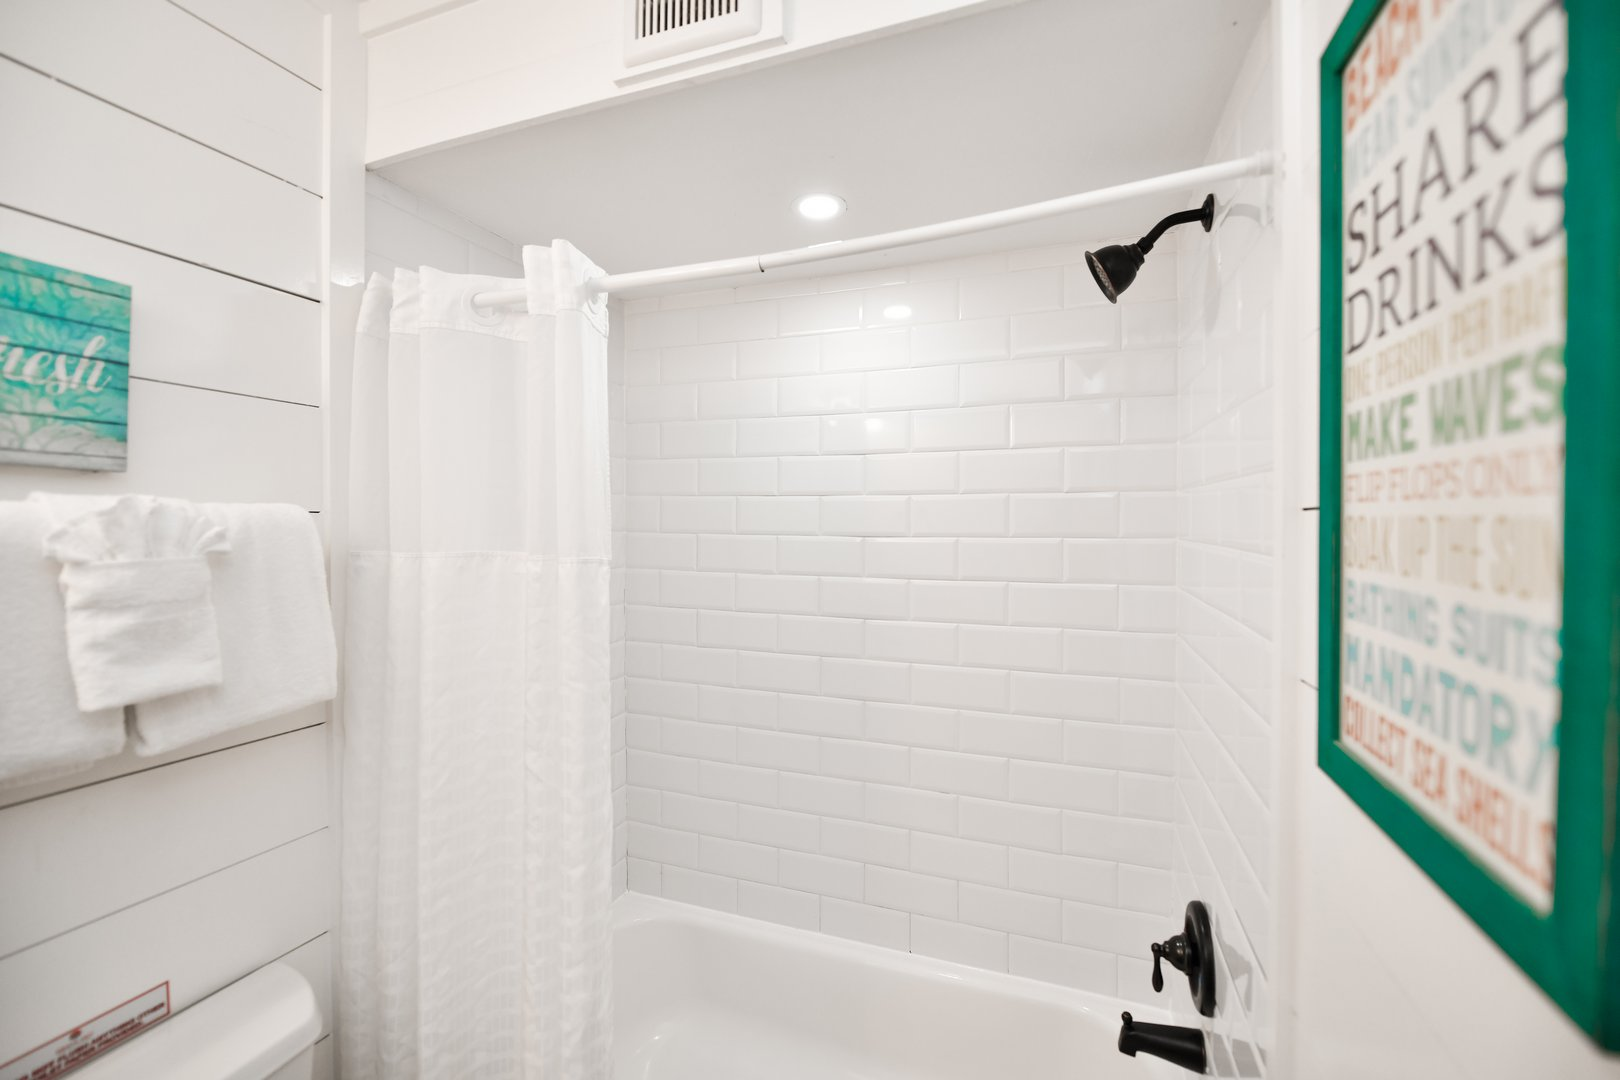 2nd Bathroom - With Shower and Tub Combination